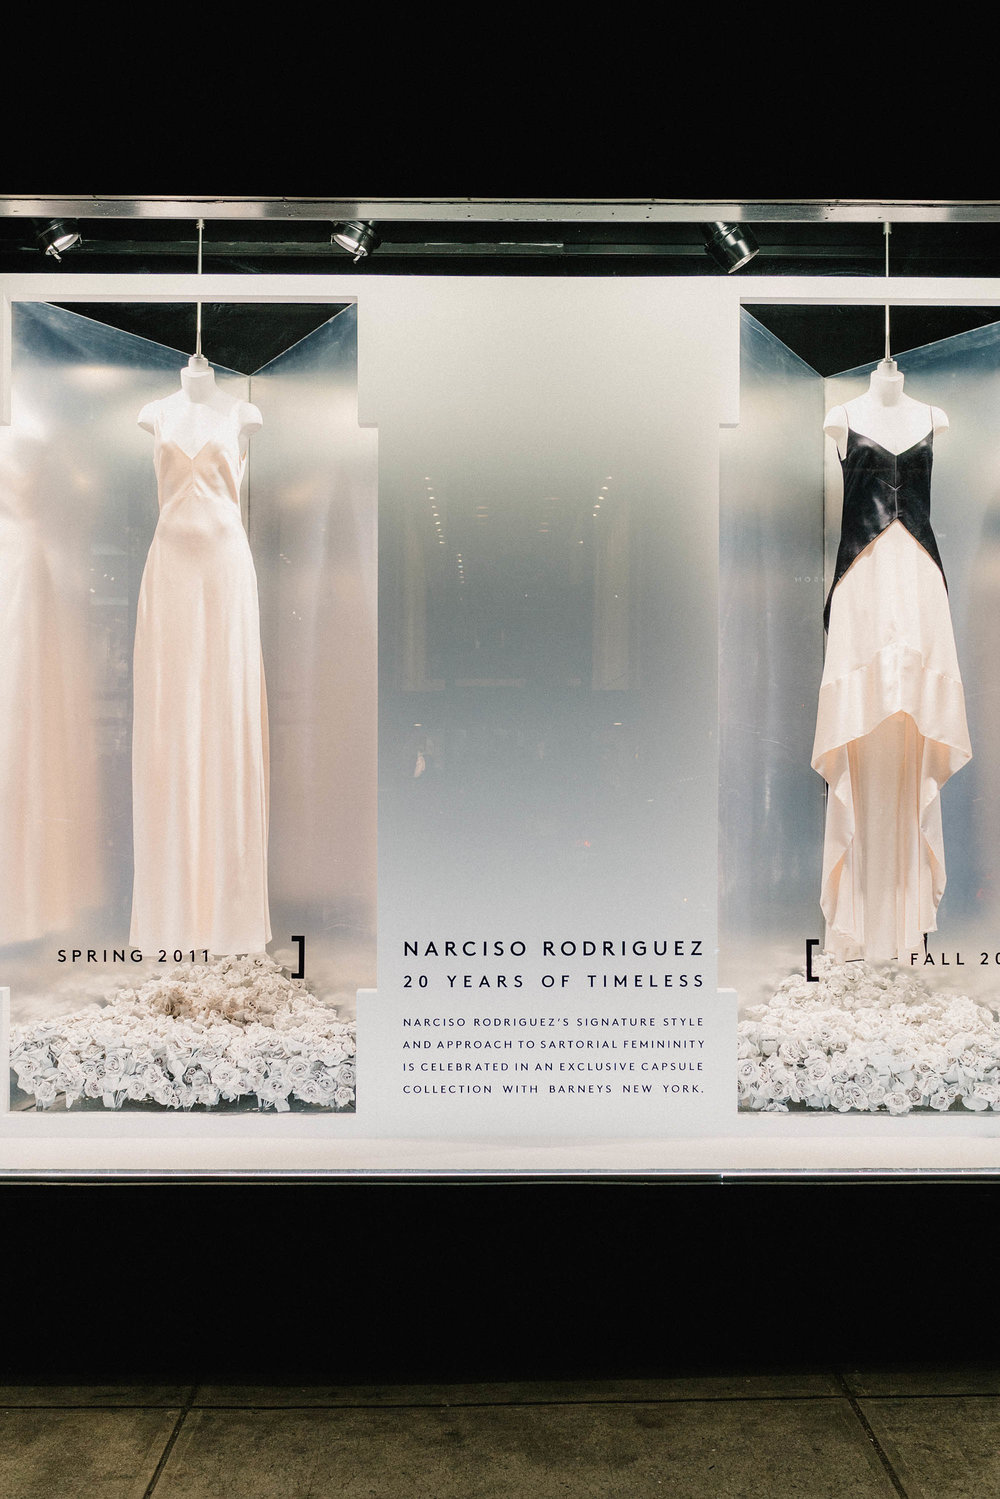 Narciso Rodriguez 20 Years of Timeless at Barneys New York